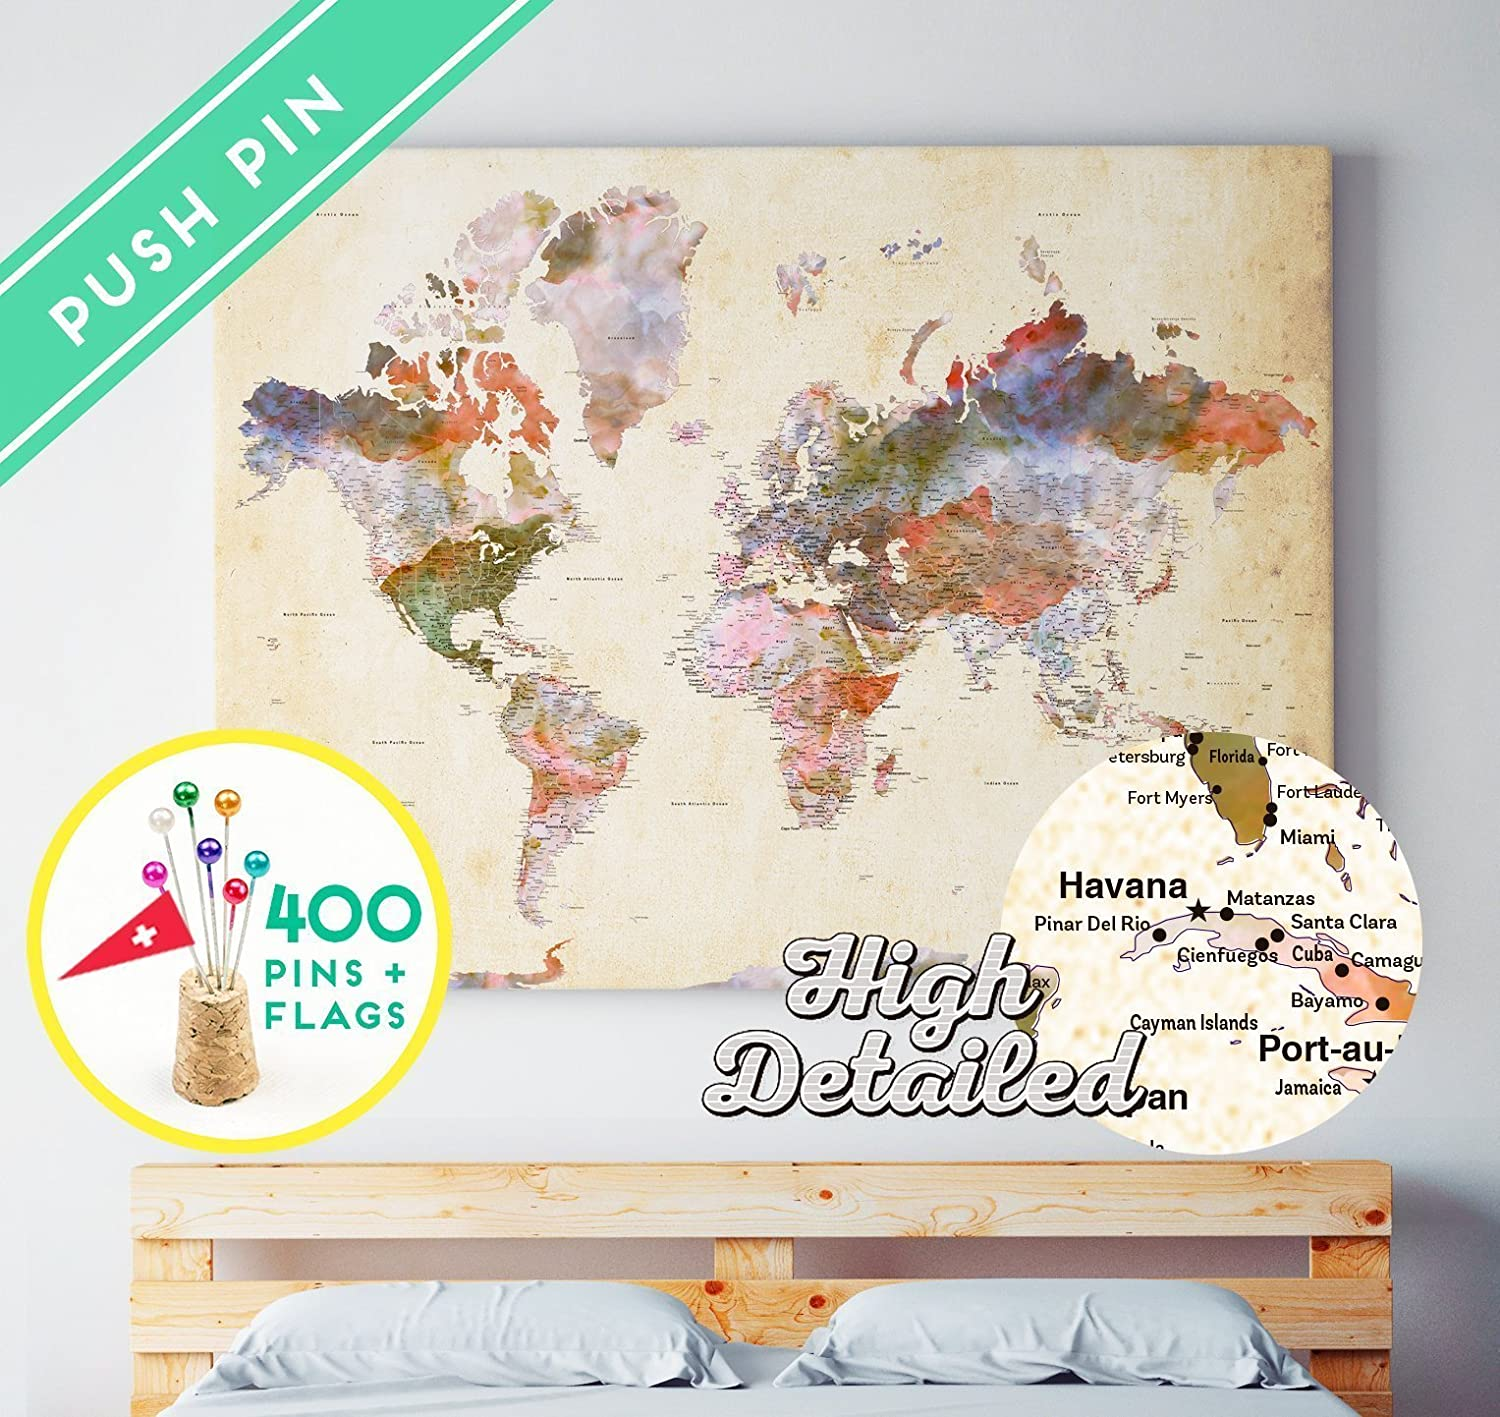 Amazon.com: Push Pin World Map CANVAS - Ready To Hang - 400 pins + on